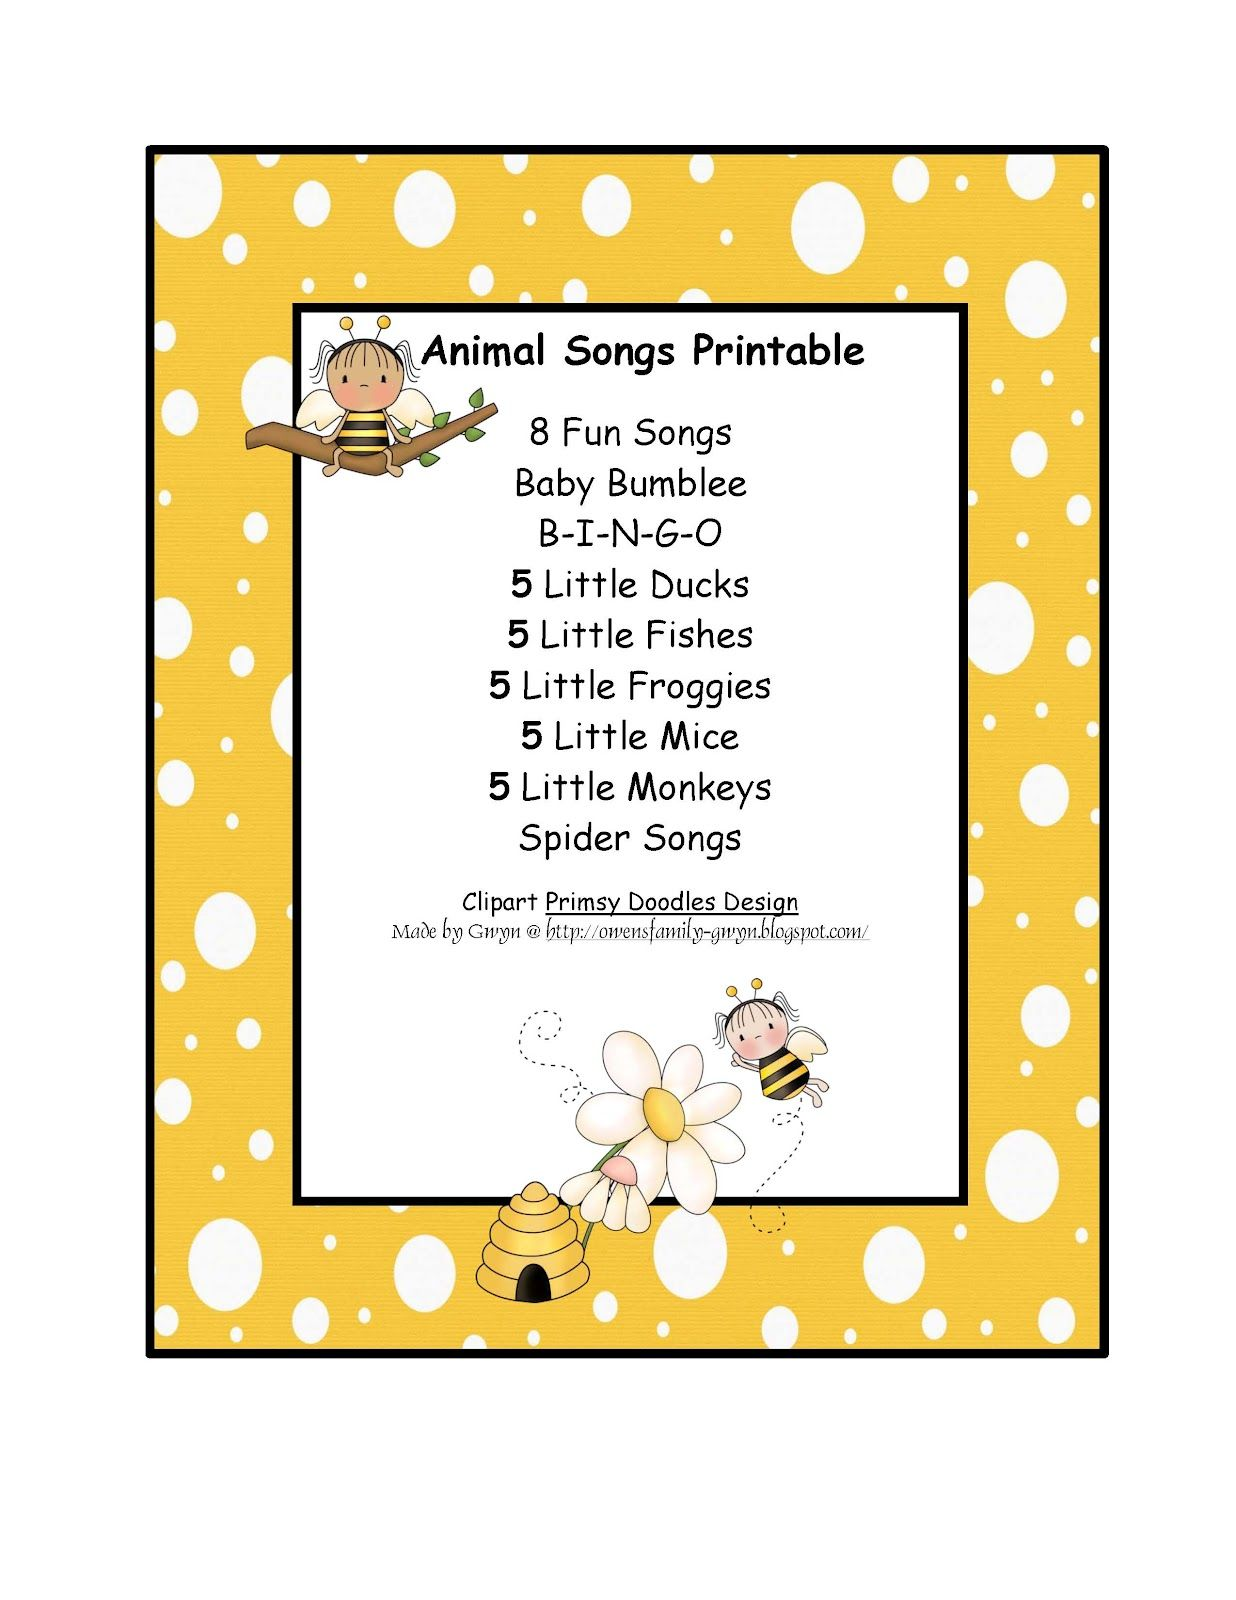 Preschool Printables Free Animal Songs Printable